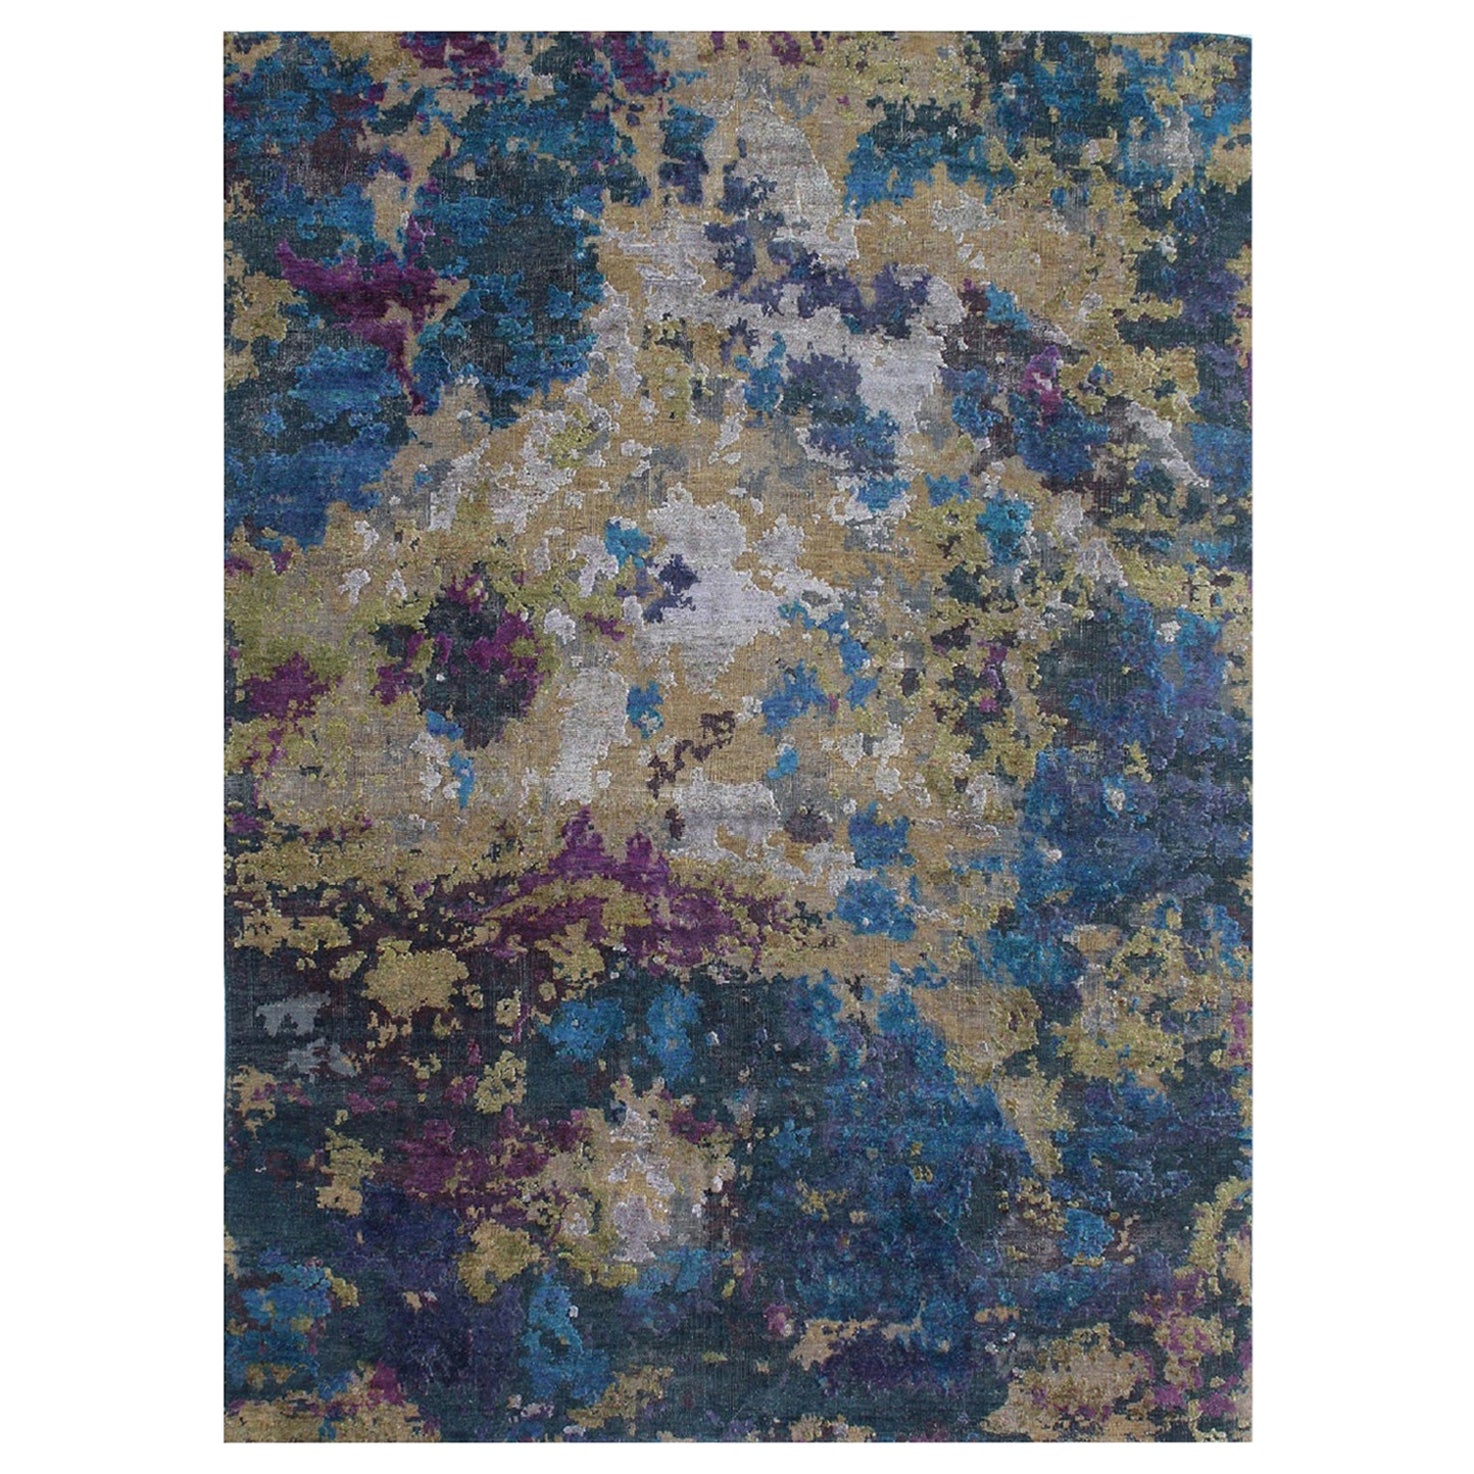 Postmodern Blue Green Purple Hand Knotted Wool and Silk Abstract Rug